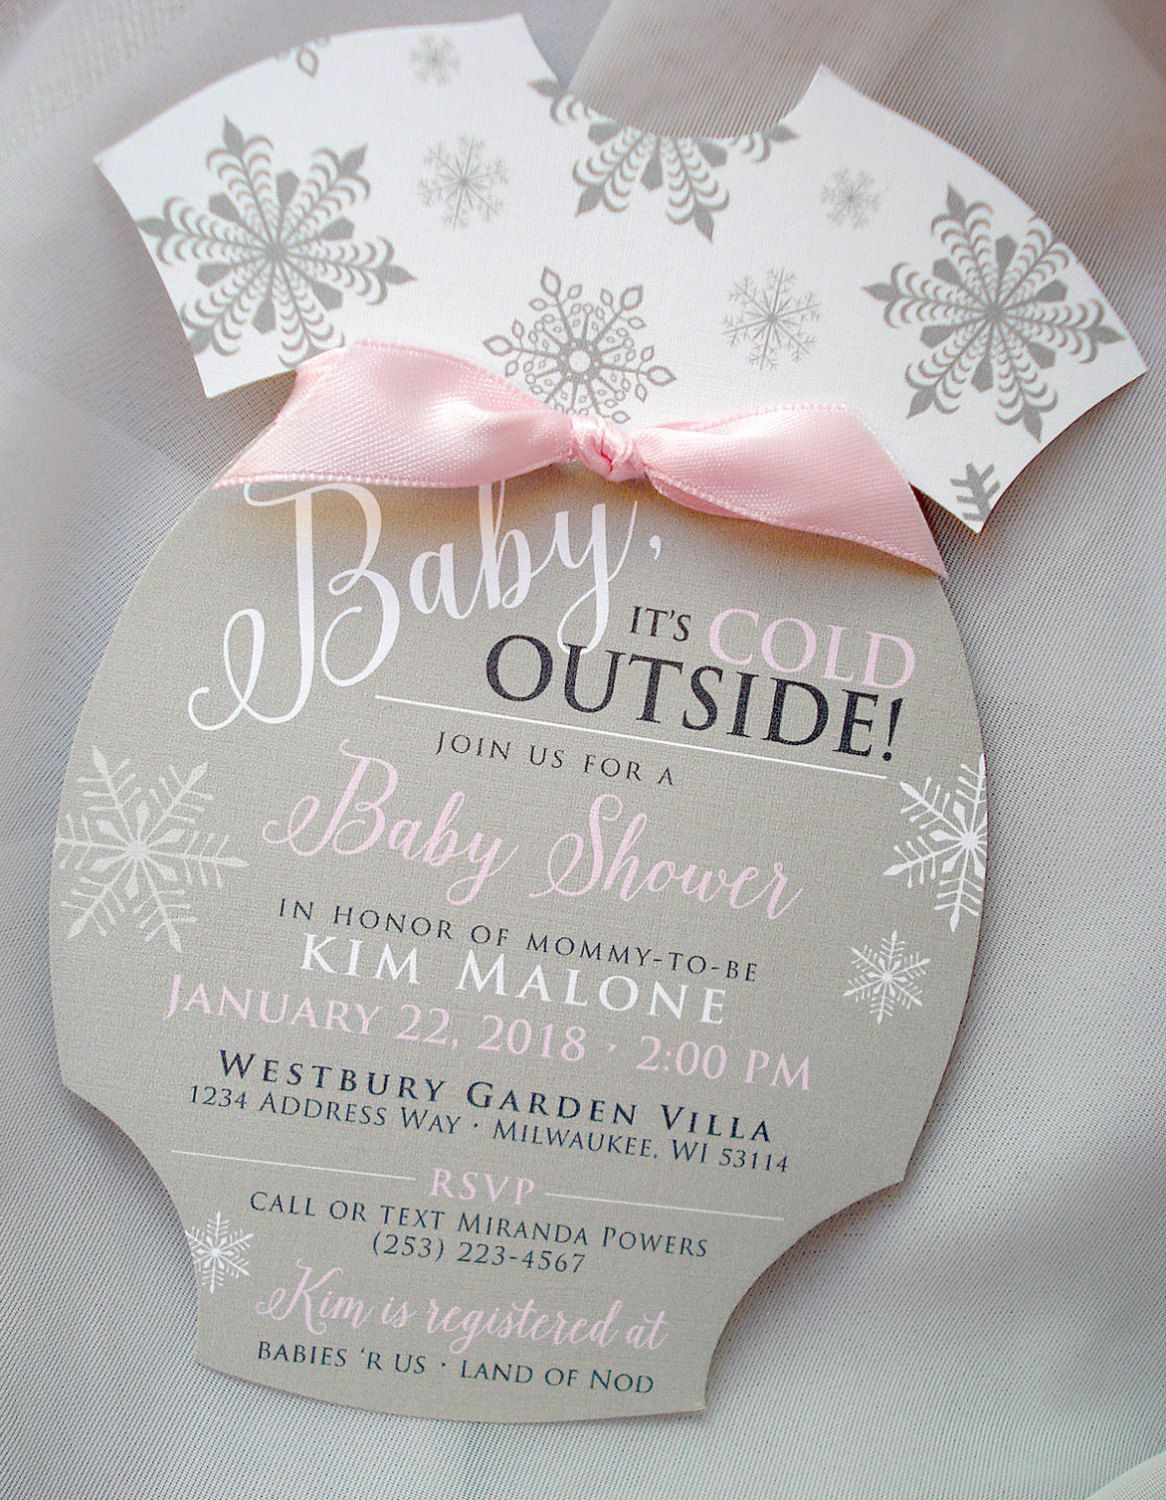 jungle theme baby shower invitation sayings%0A Baby It u    s Cold Outside Handcut Onesie Snowflake Baby Shower Invitation Set   Sample by envymarketing on